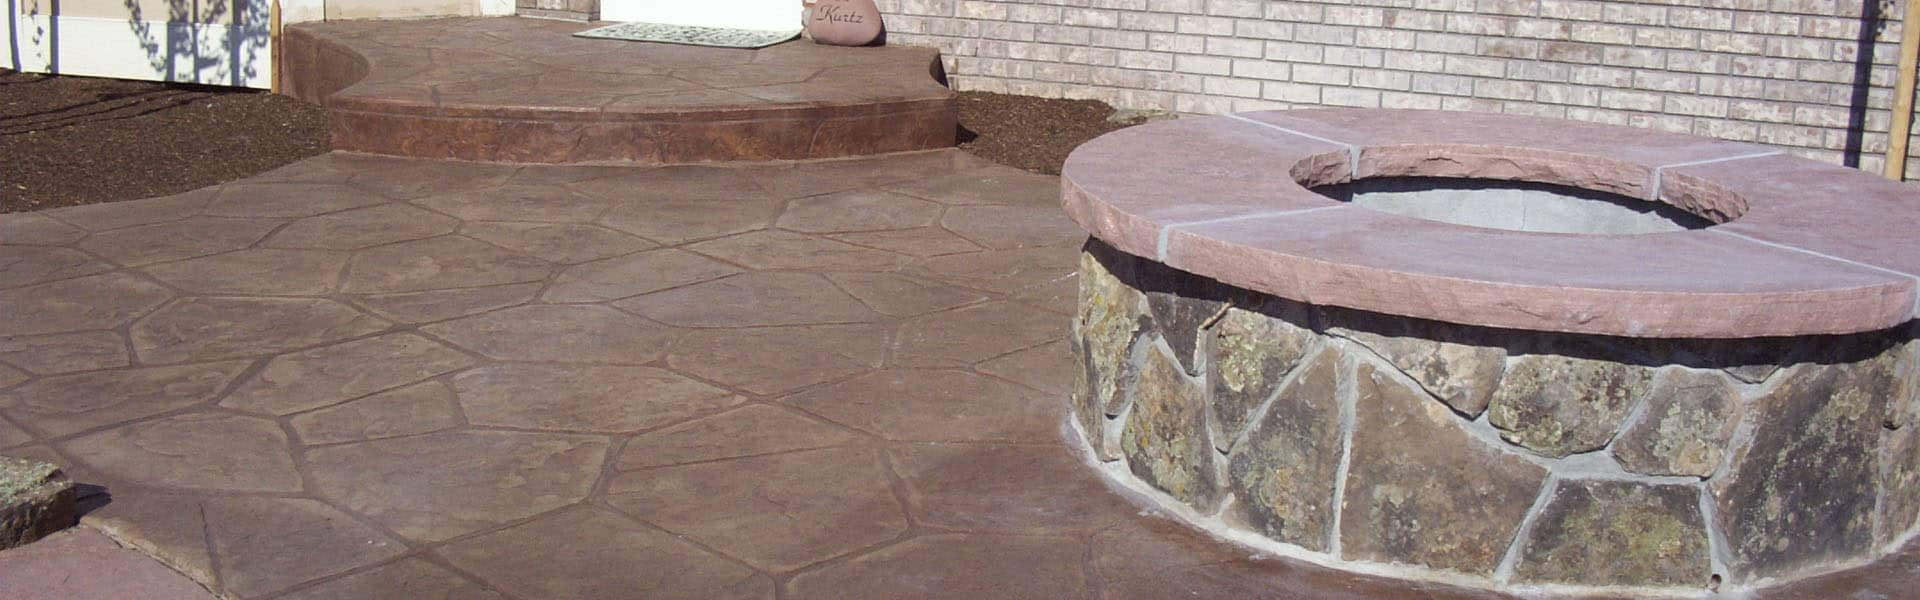 Norris Concrete - custom concrete firepits and patios